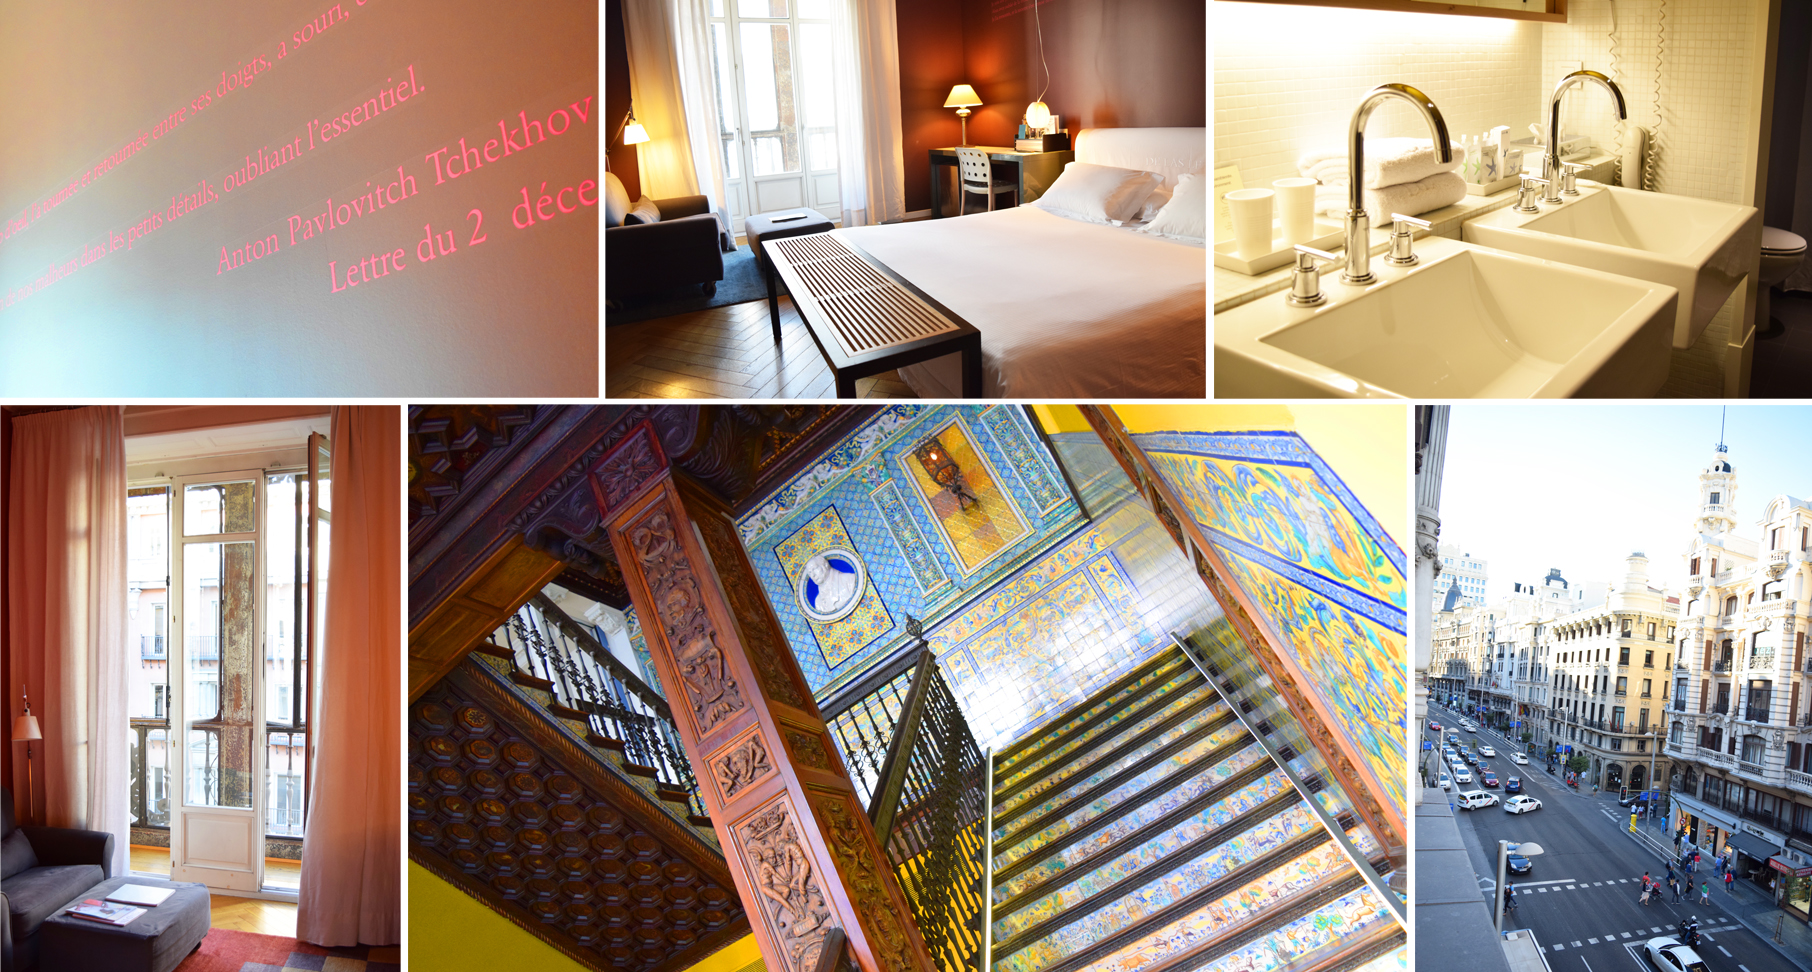 iberostar-las-letras-gran-via-rooms-and-decor